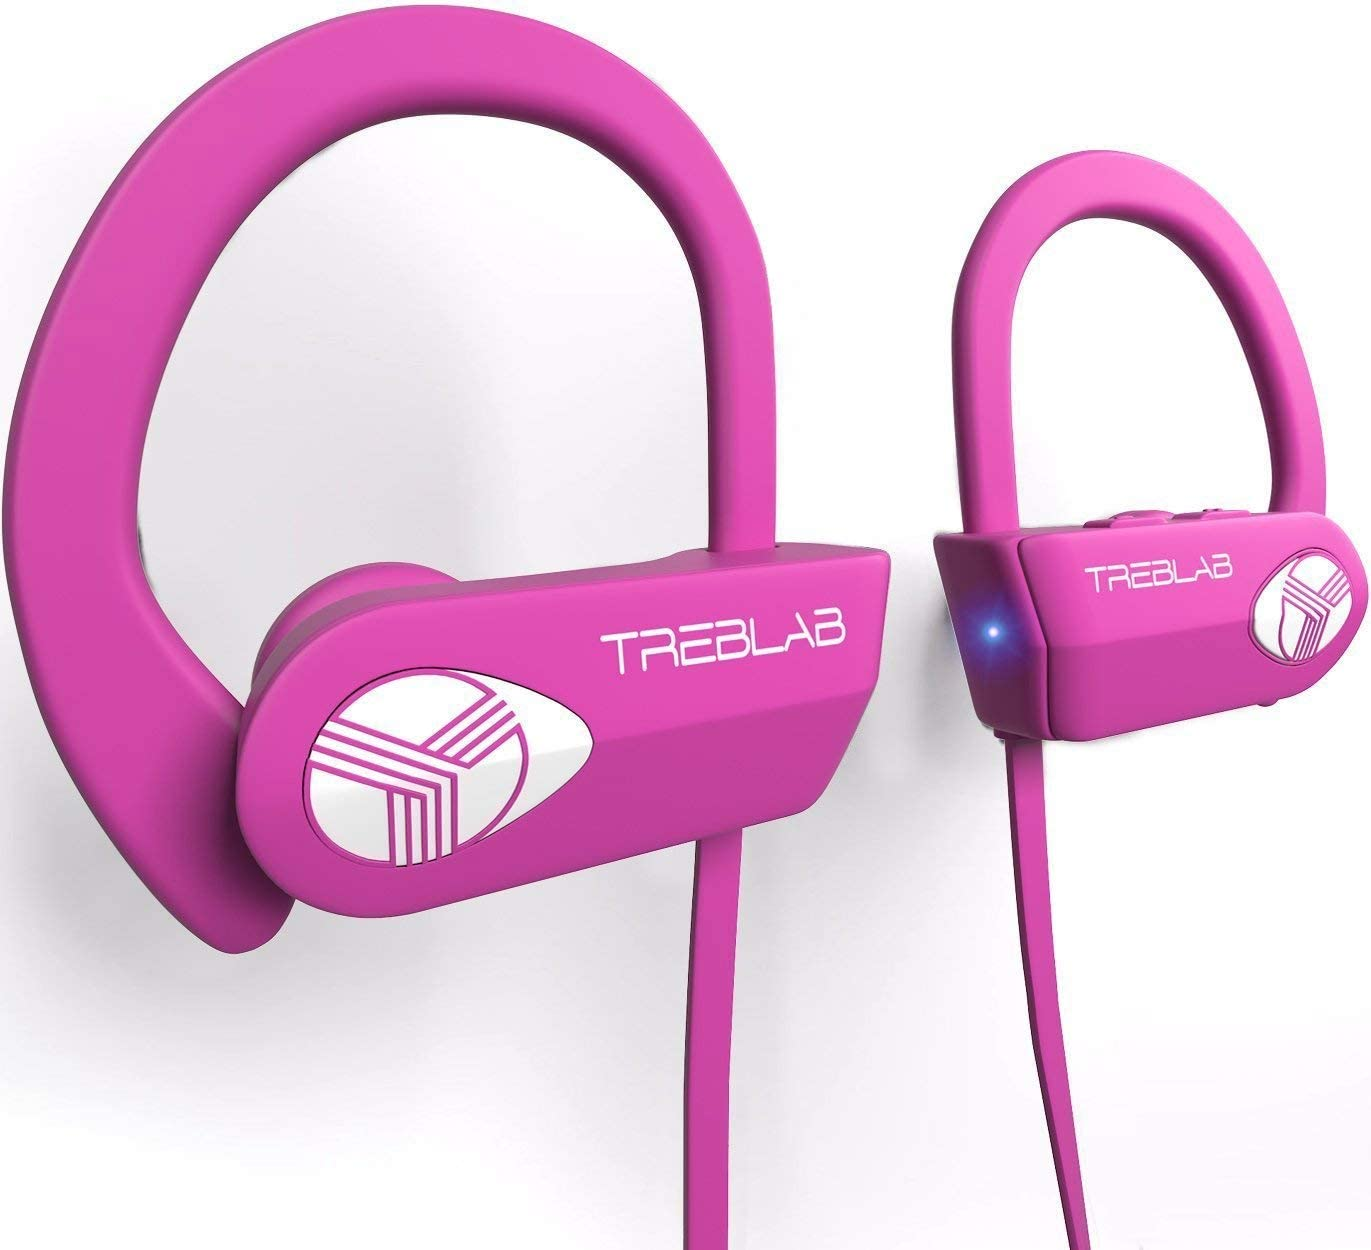 TREBLAB XR500 Bluetooth Headphones, Wireless Earbuds for Sports, Running Gym Workout. IPX7 Water Resistant, Sweatproof, Secure-Fit Headset. Noise Cancelling Earphones w Mic. Pink Renewed